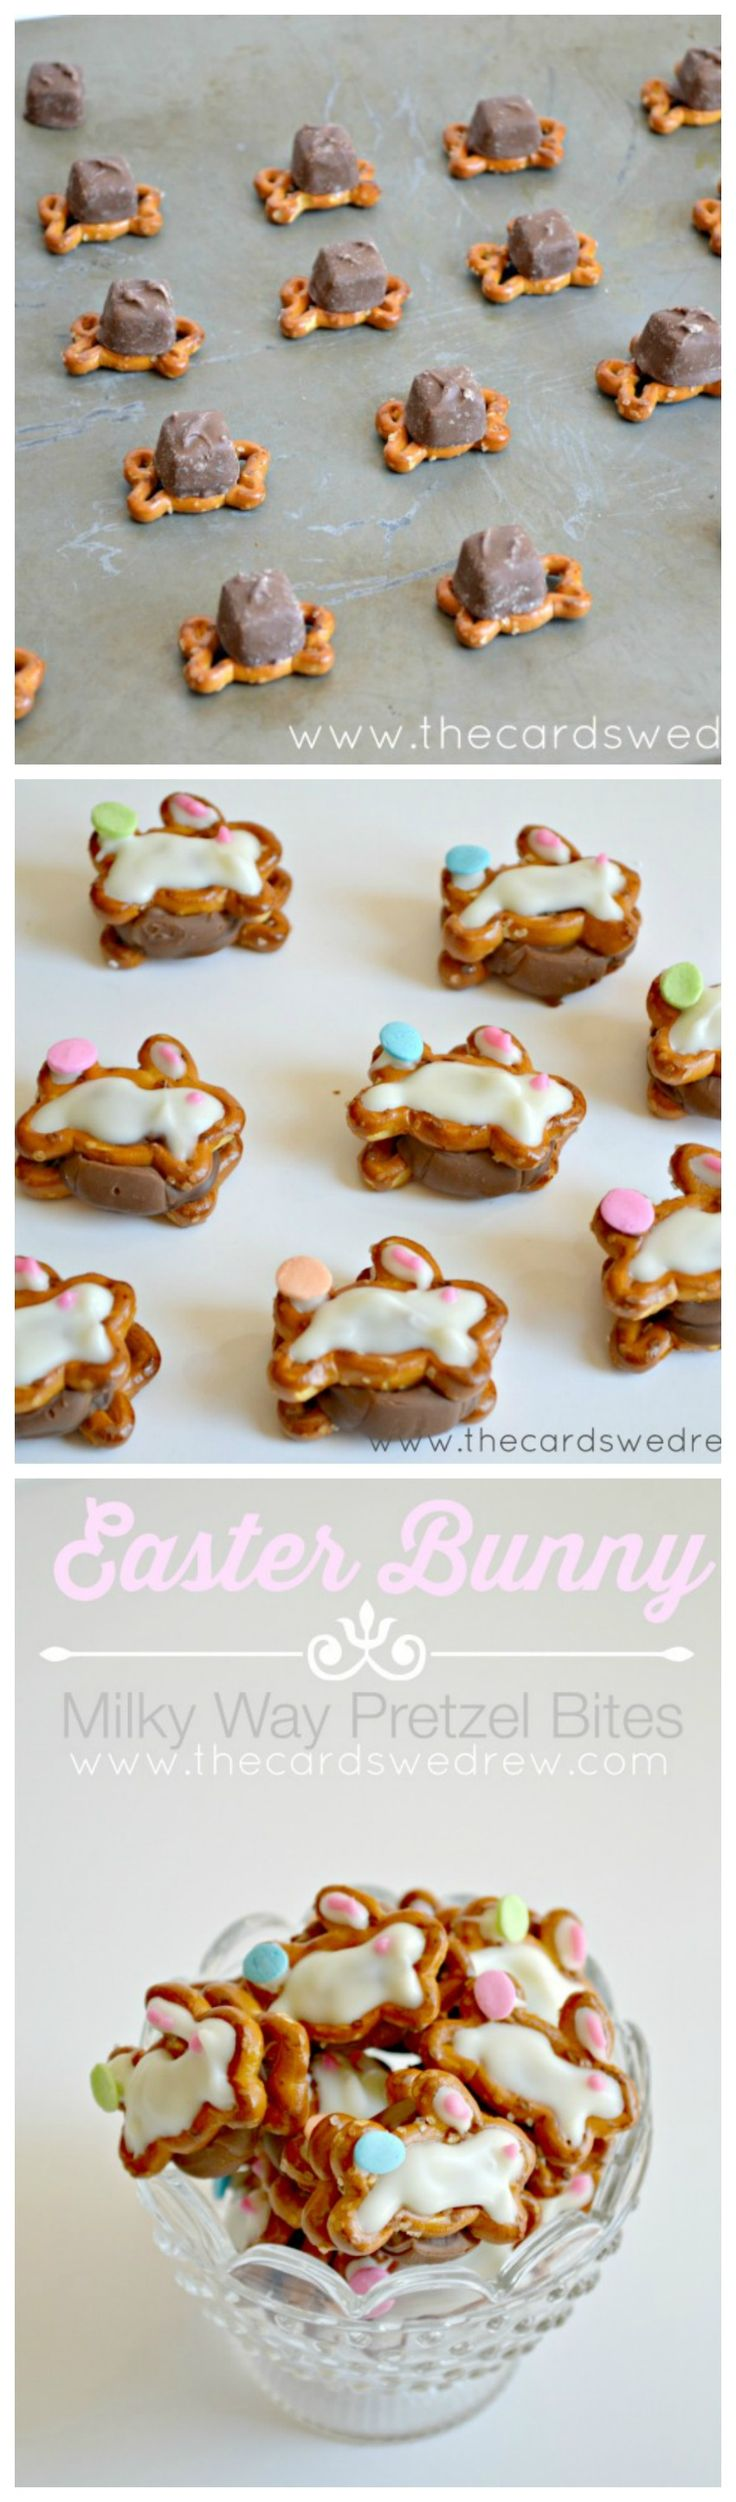 325 best easter recipes and other goodies images on pinterest milky way caramel pretzel bunny bites make the perfect easter treat or gift idea negle Images